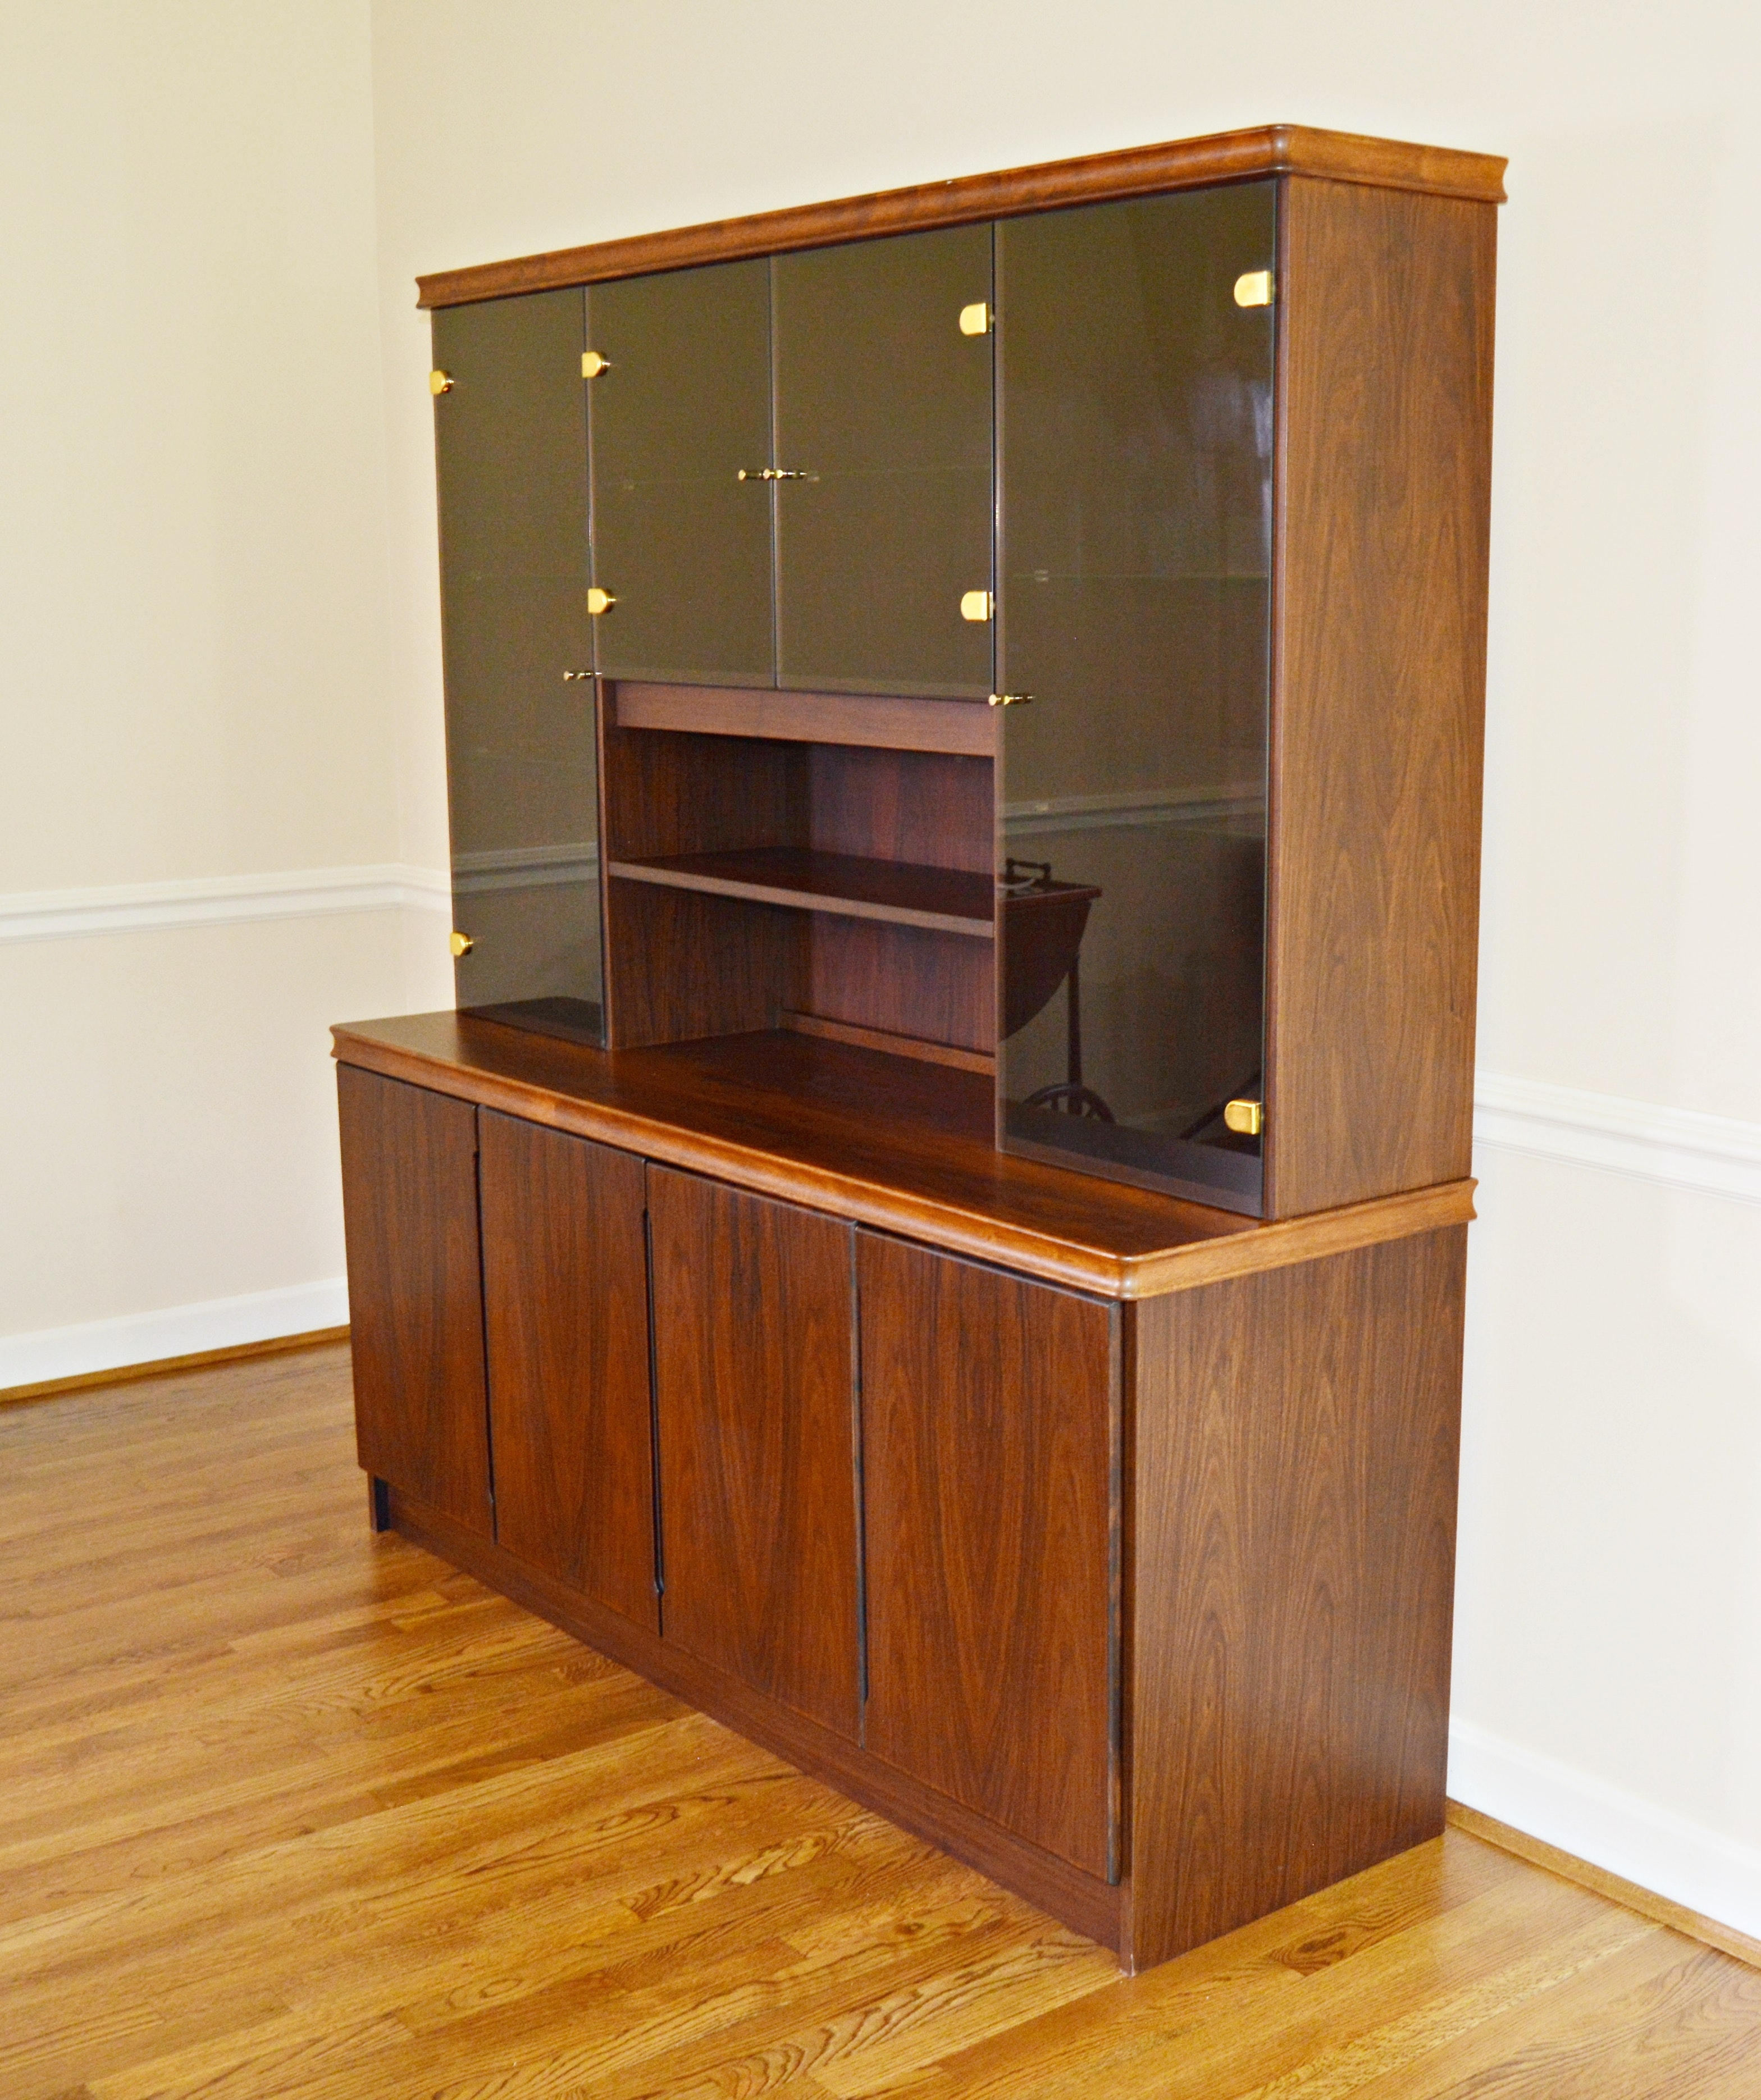 Danish Modern Rosewood Credenza and Hutch by A/S for Christian Linneberg